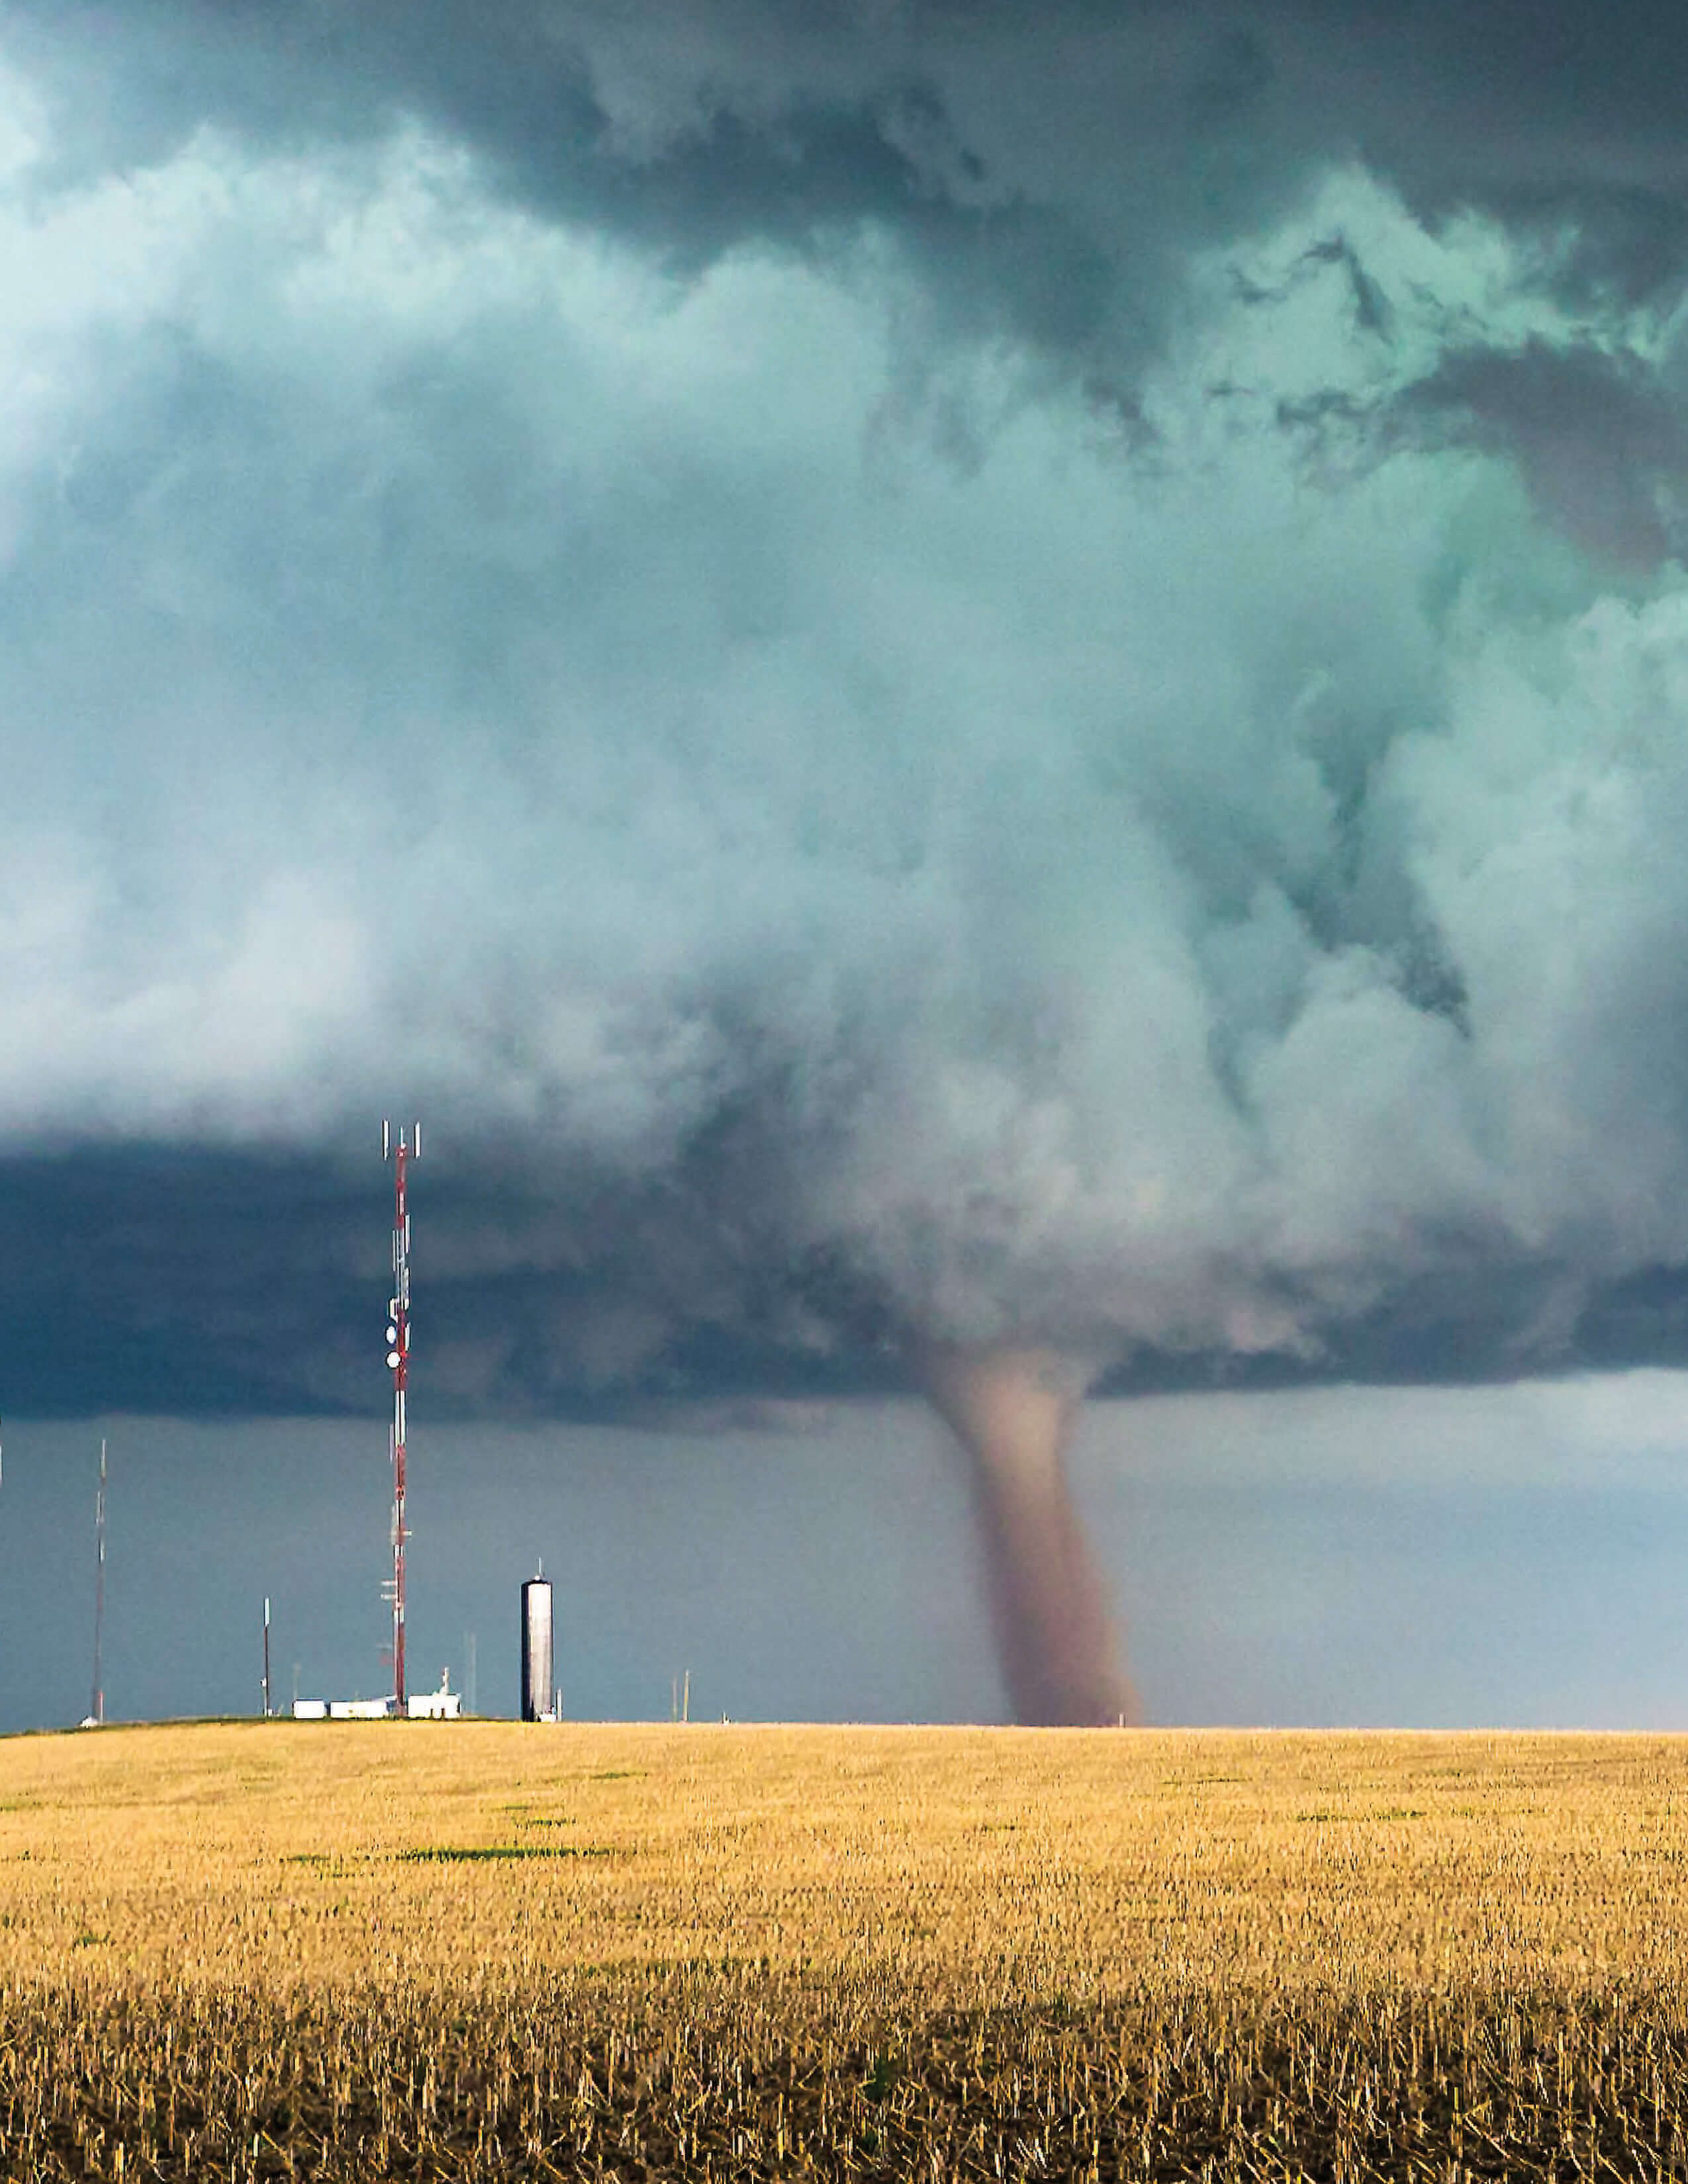 For a structure to be tornado-proof, it must be missile-proof.